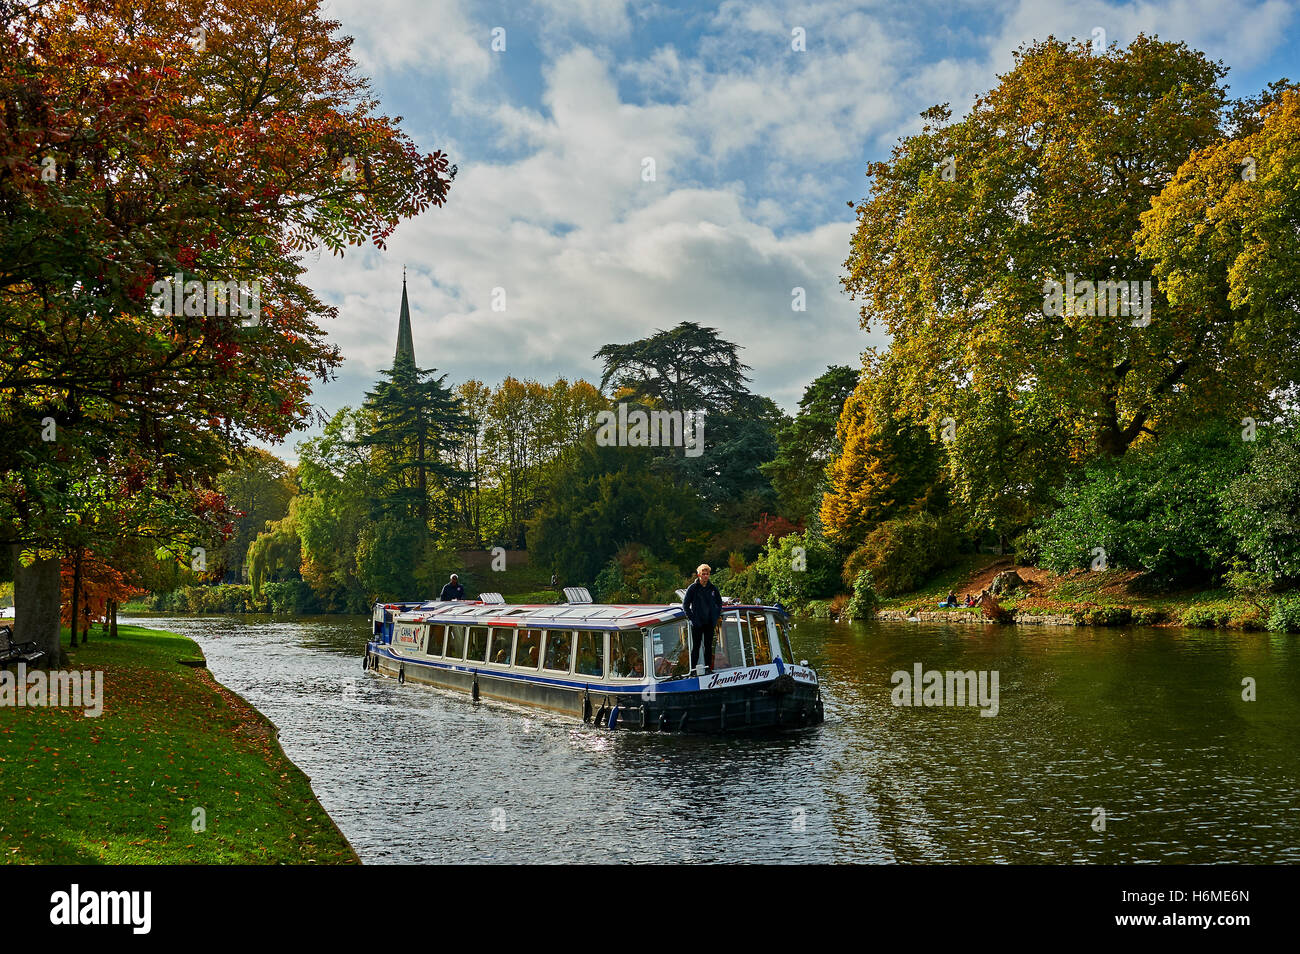 Pleasure cruiser on the River Avon in Stratford upon Avon, with autumnal colours on the trees. - Stock Image